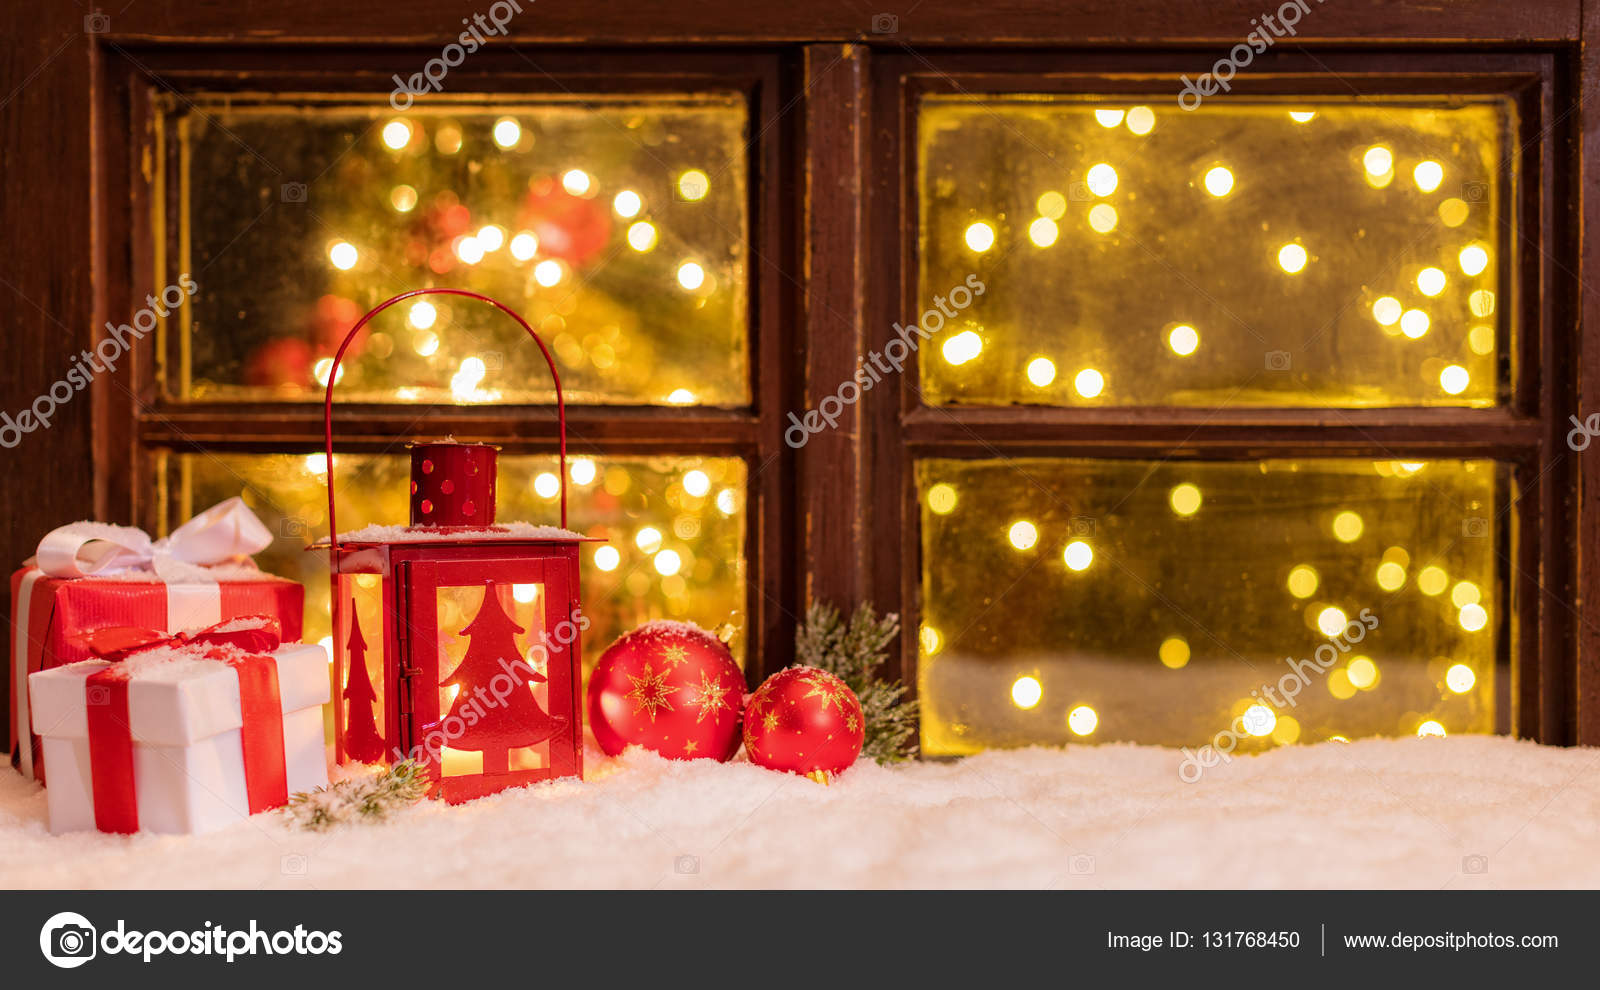 atmospheric christmas window sill with decoration and blur tree wth lights inside photo by jag_cz